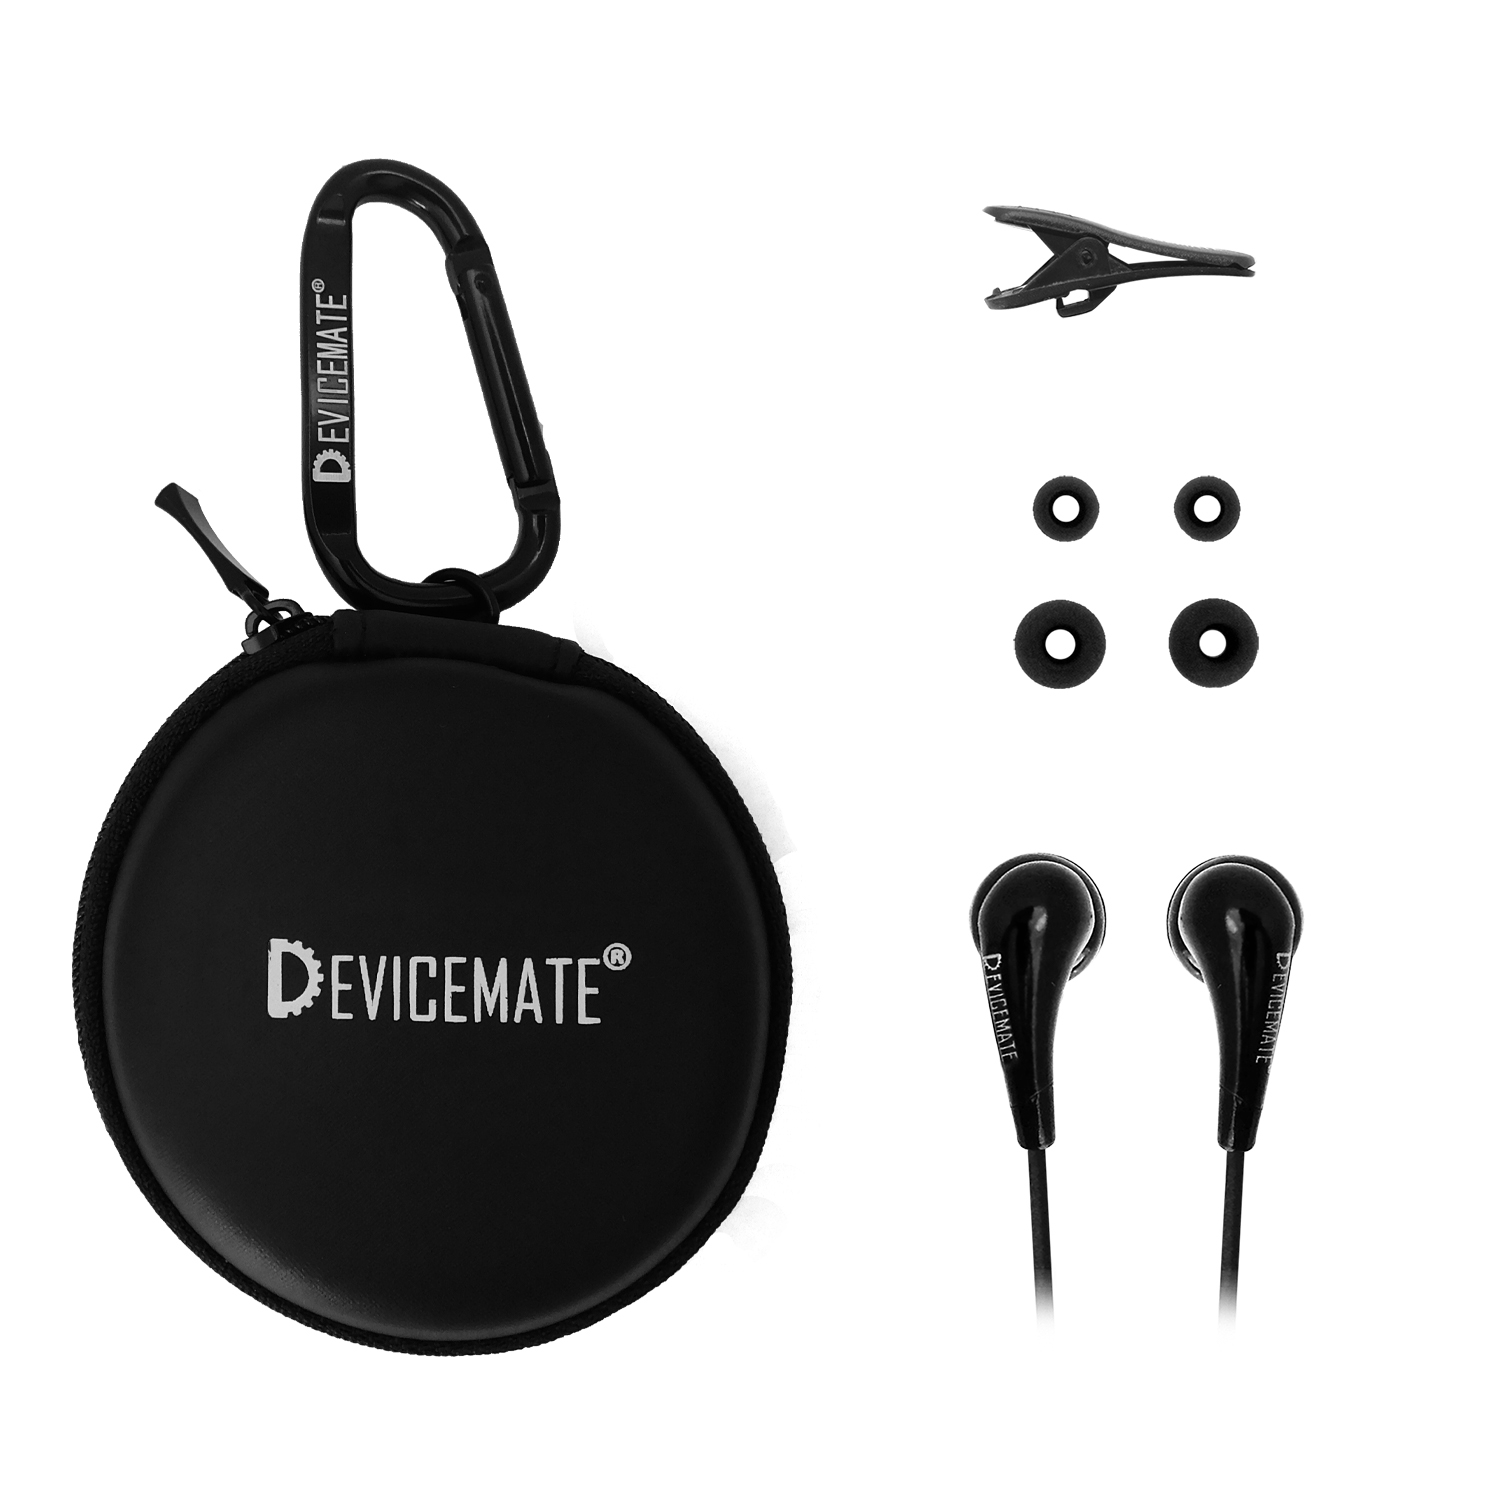 Devicemate SD 255 In-Ear Stereo Earphones [Black] Case